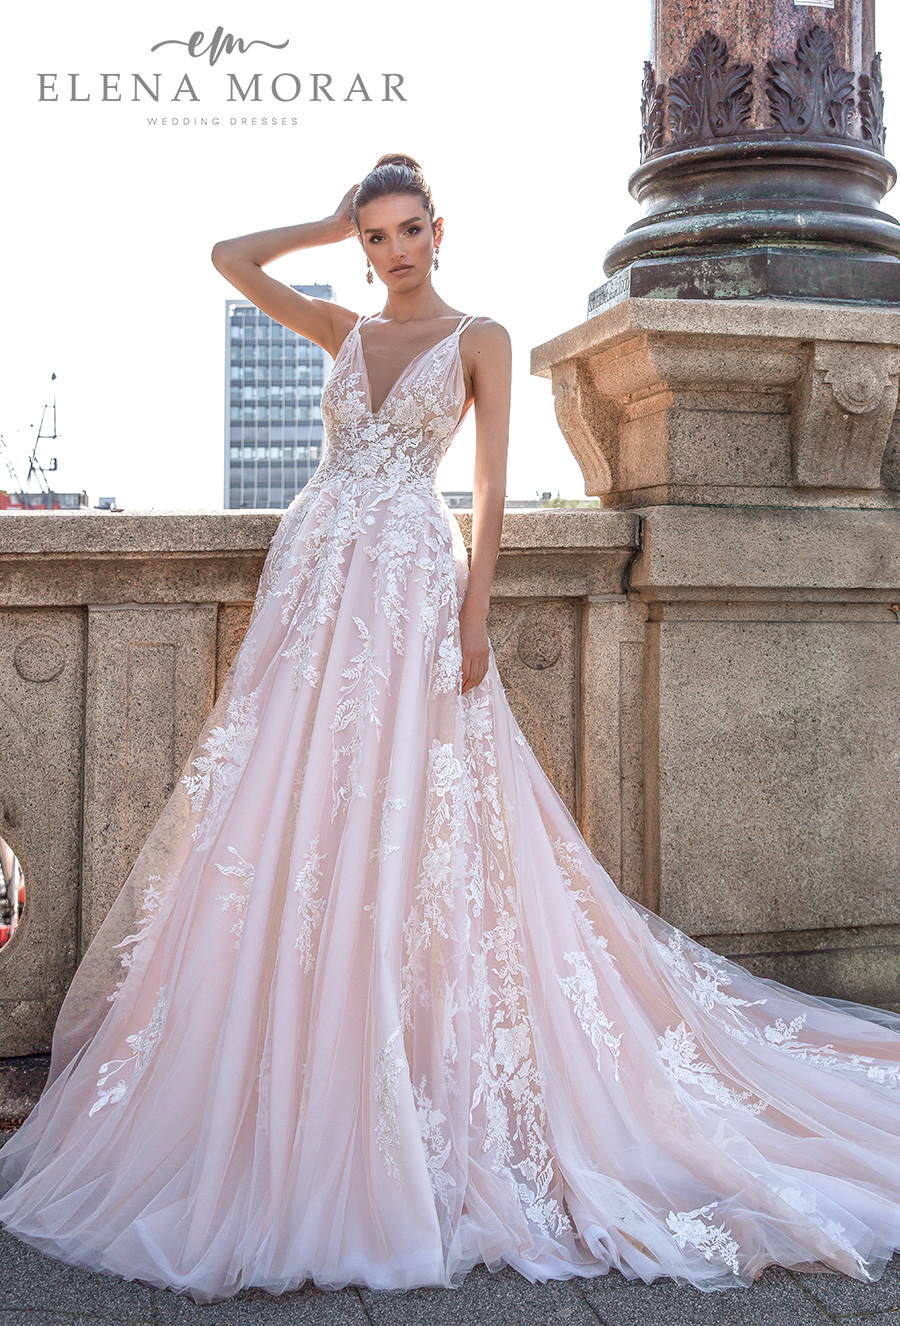 elena morar 2021 rotterdam bridal sleeveless double strap v neck heavily embellished bodice romantic blush a line wedding dress backless v back long train (rm017) mv